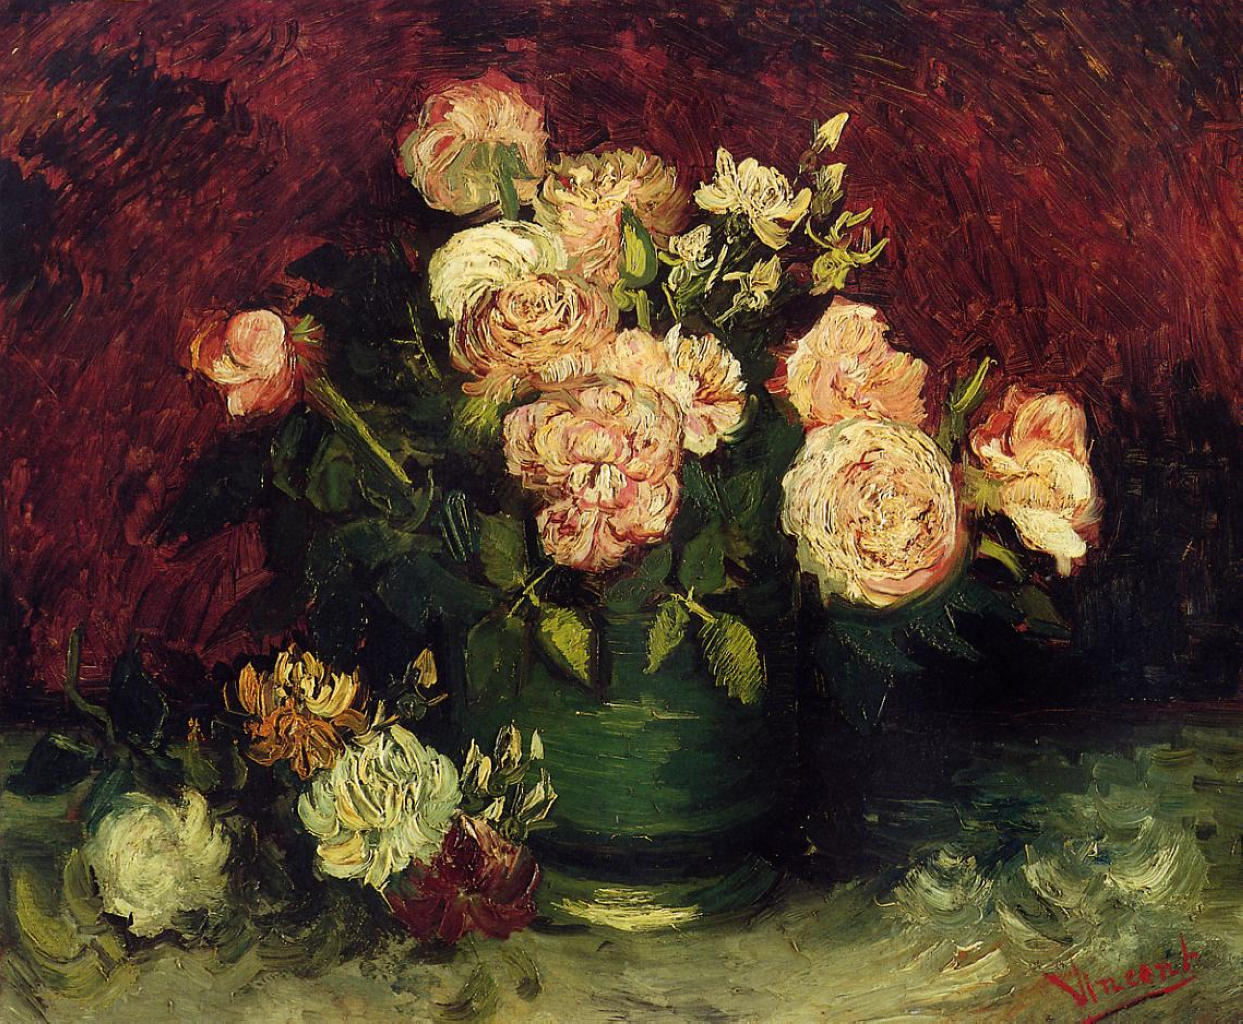 Bowl with Peonies and Roses 1886 Vincent van Gogh WikiArt